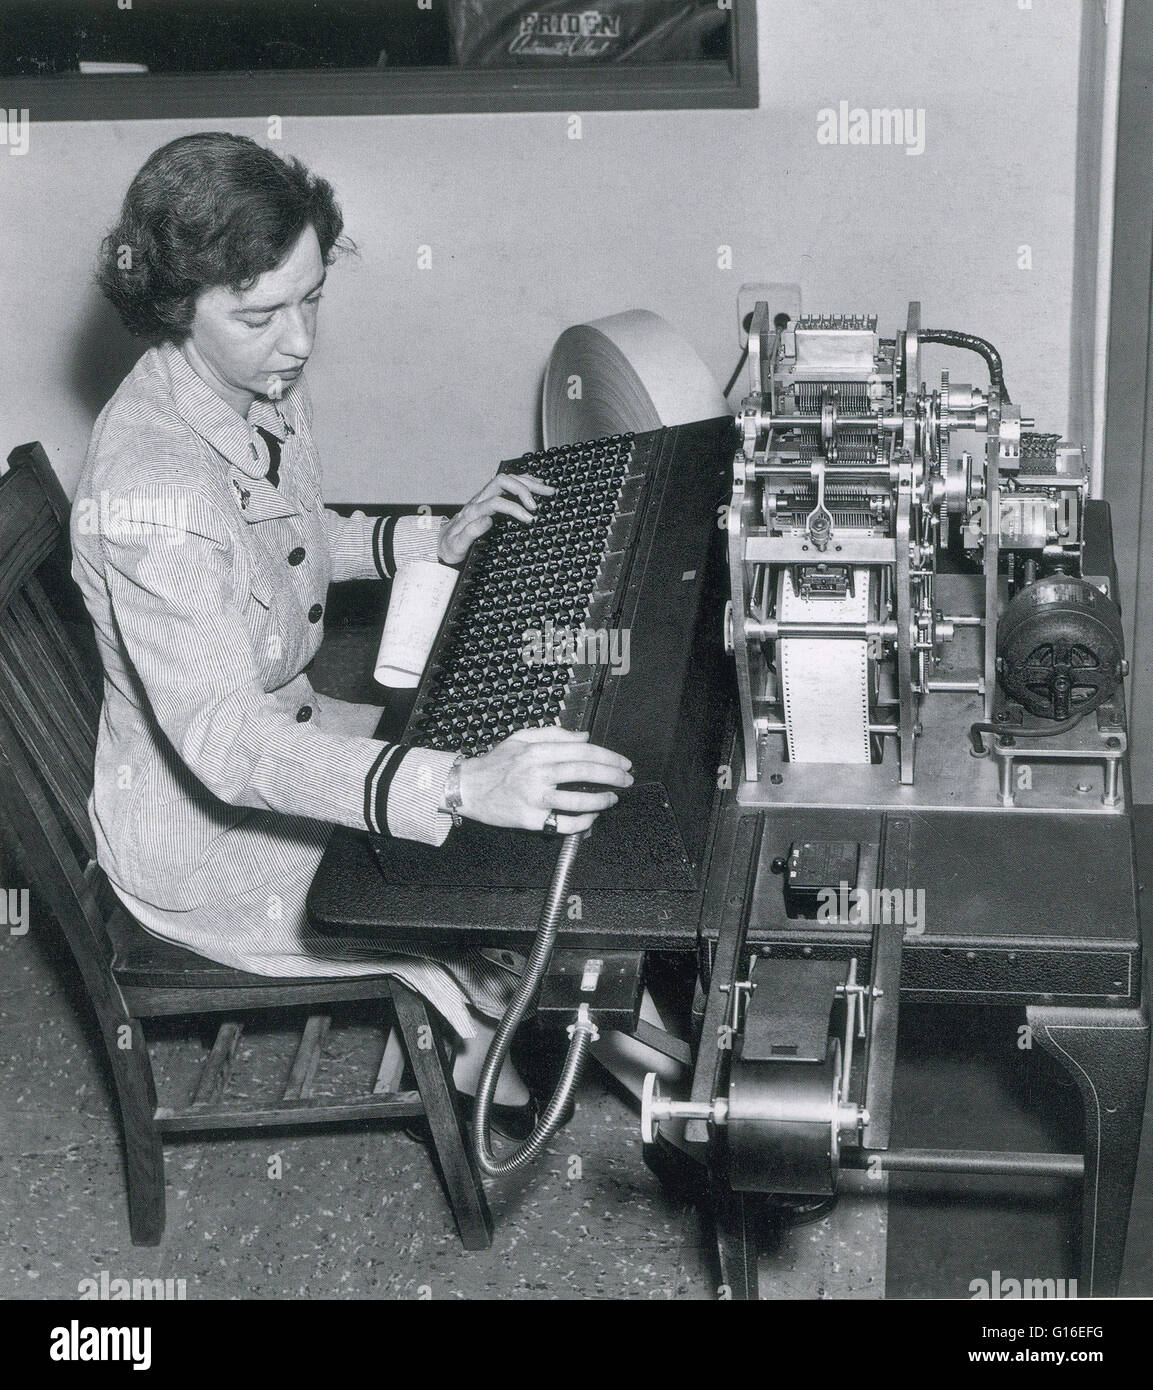 Hopper works on a manual tape punch computer, 1944. Grace Murray Hopper (December 9, 1906 - January 1, 1992) was - Stock Image